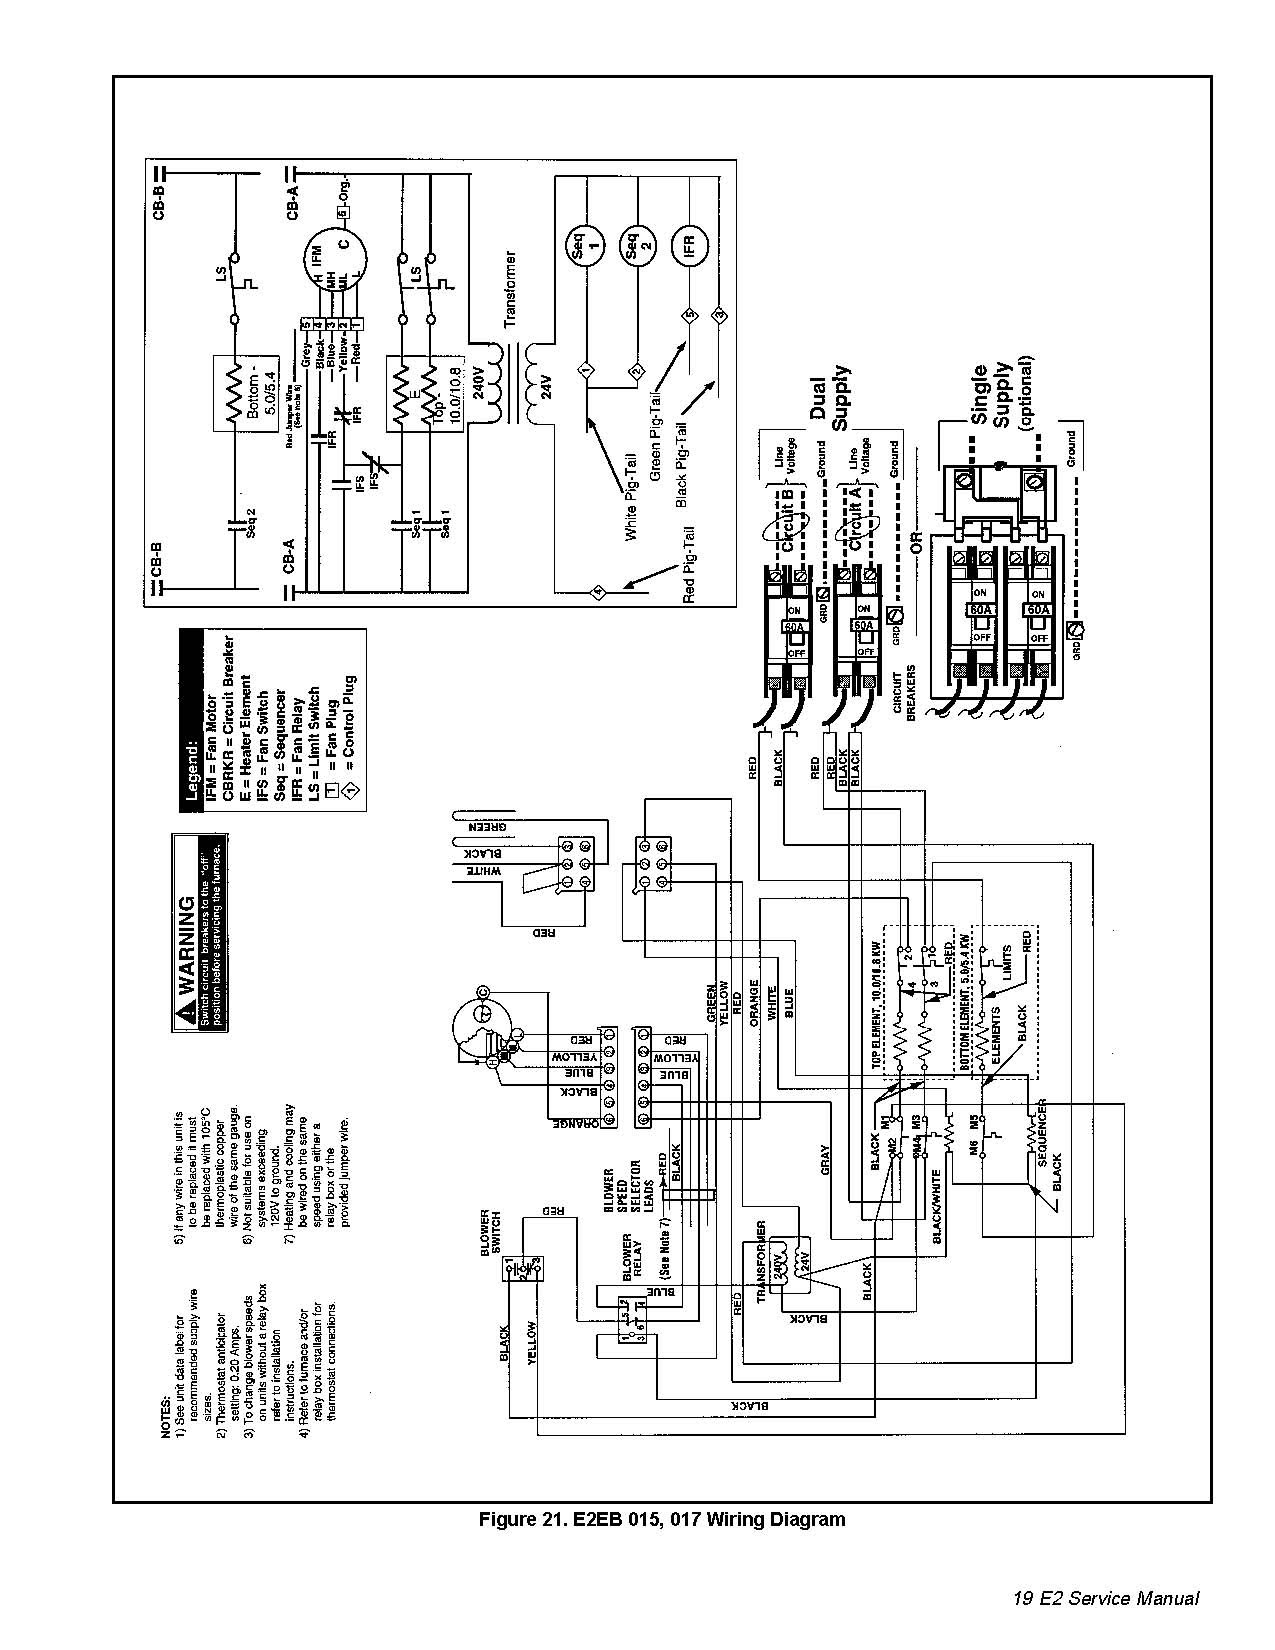 hight resolution of nordyne wiring diagram wiring diagram library nordyne furnace wiring diagram nordyne wiring diagram